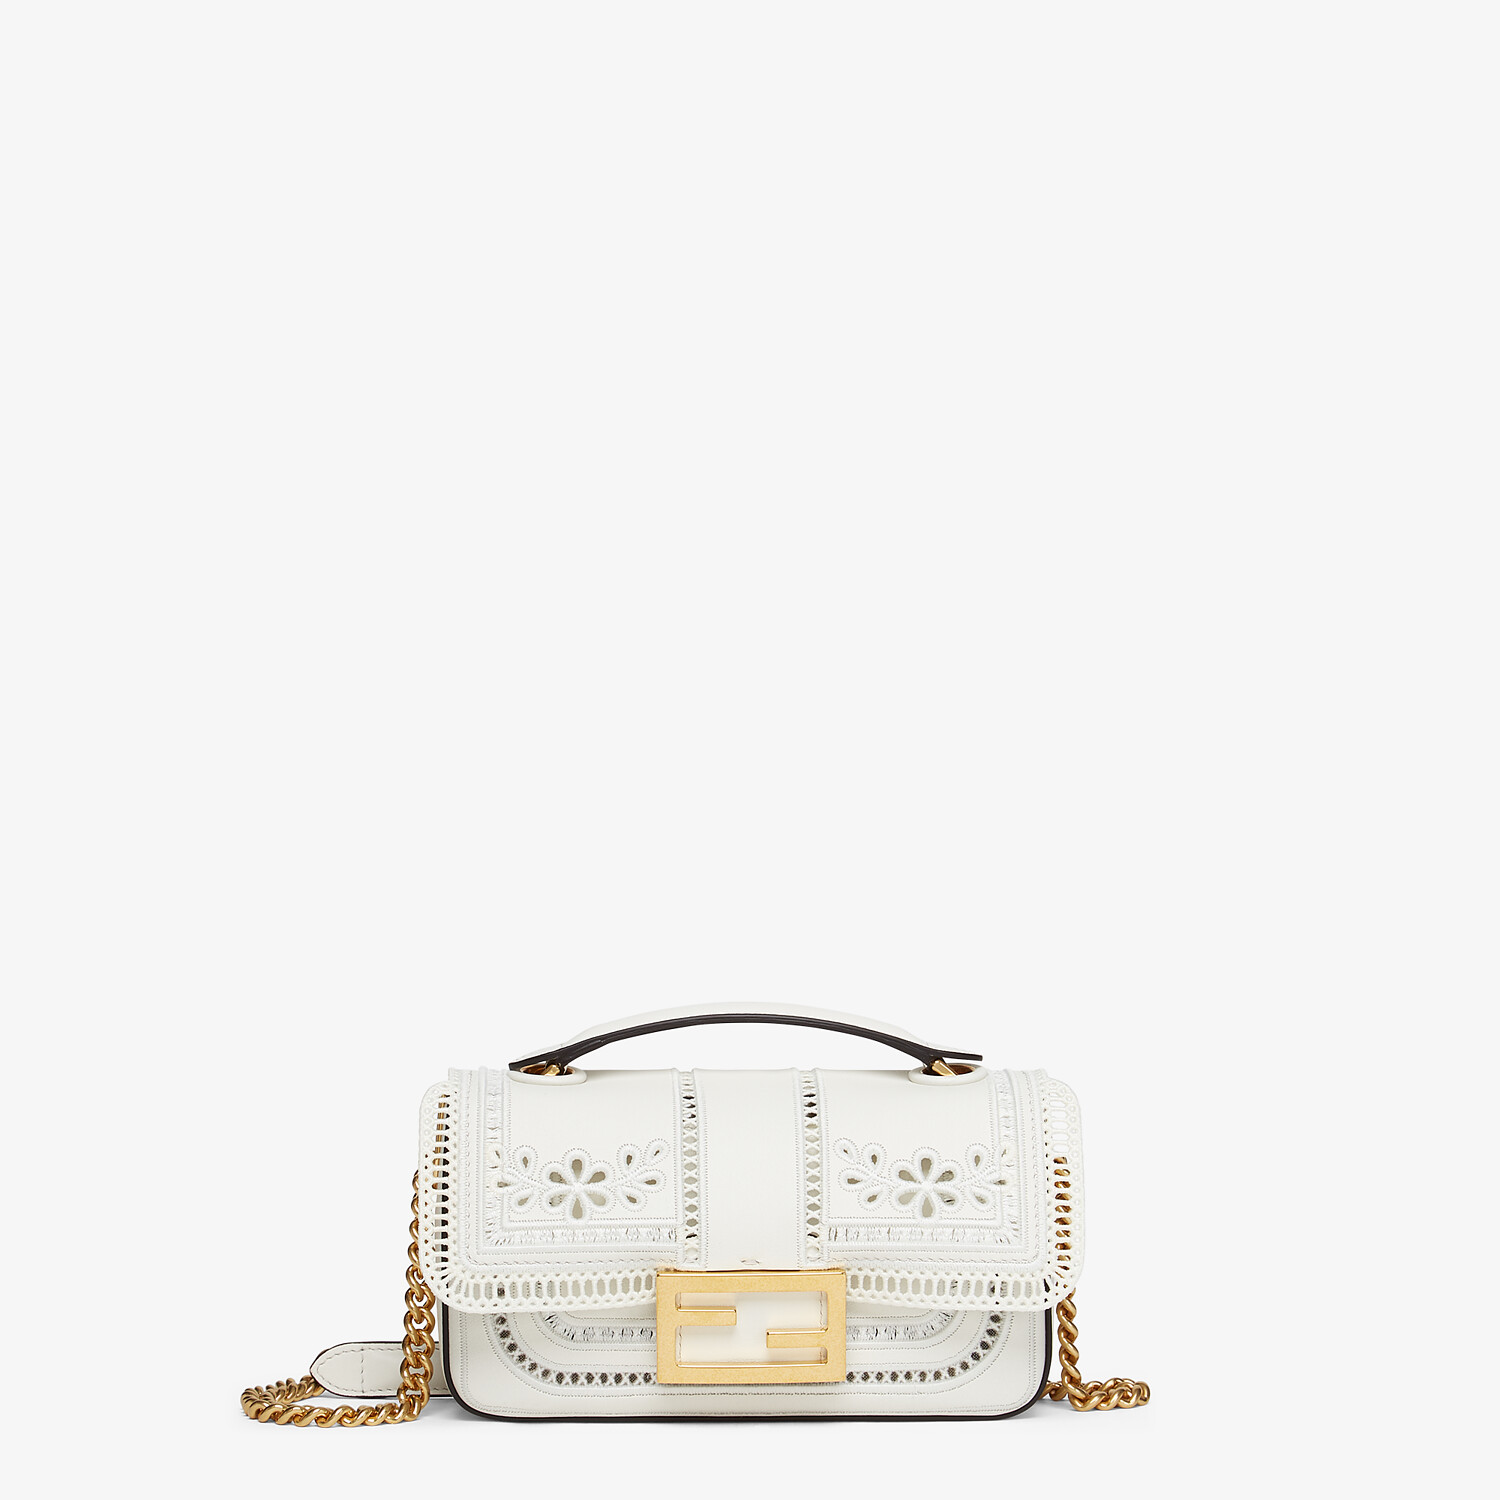 FENDI MINI BAGUETTE CHAIN - Embroidered white leather bag - view 1 detail